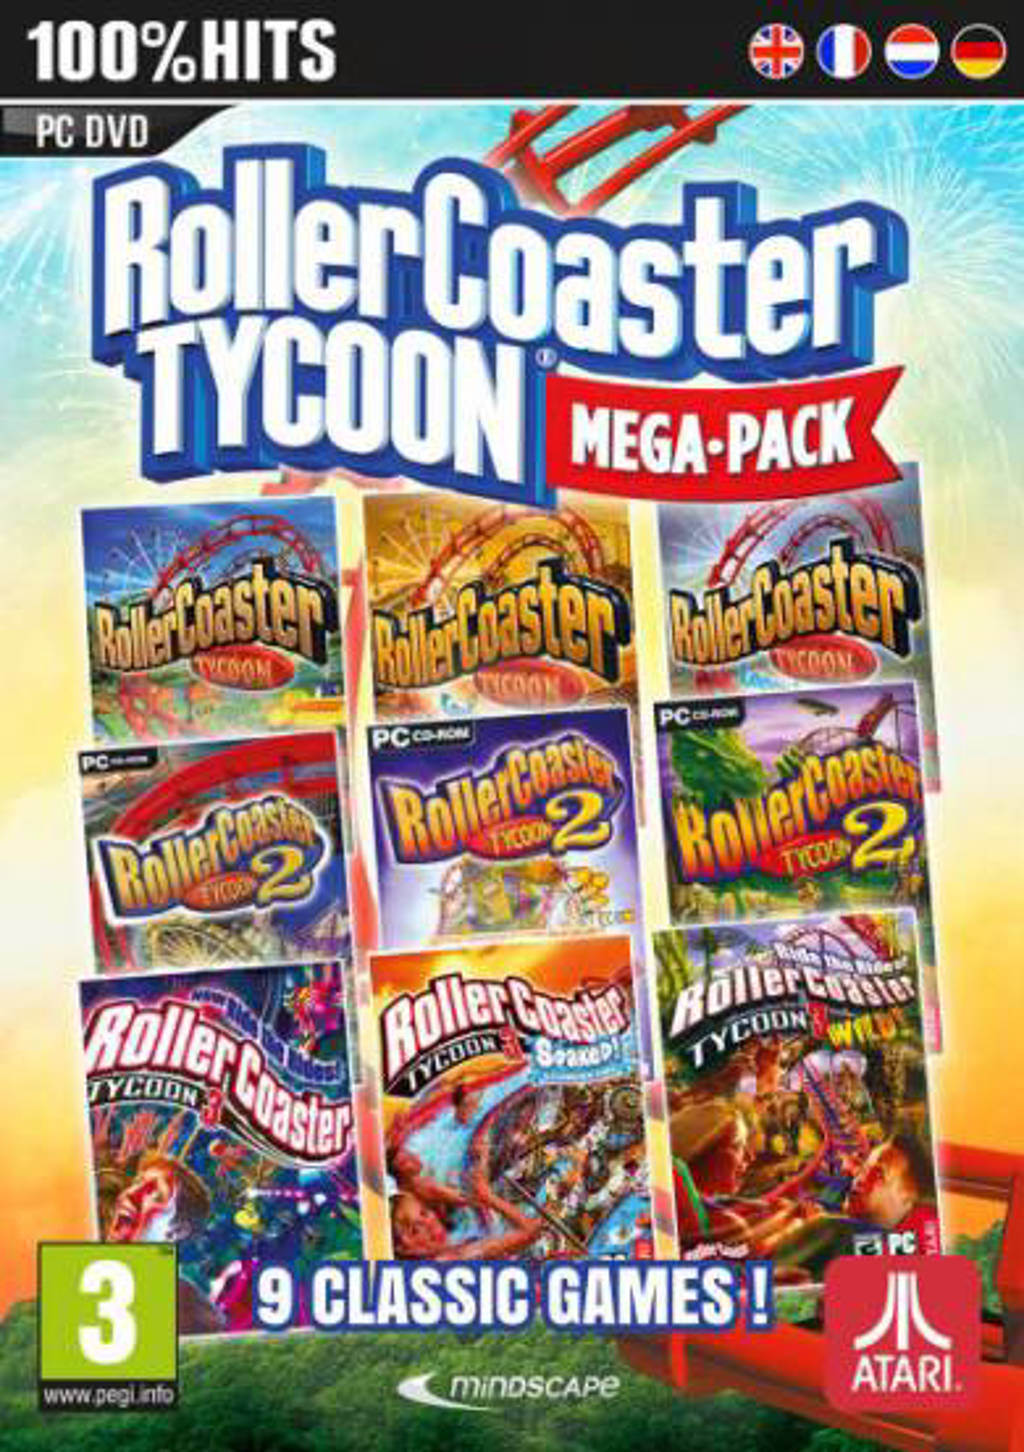 Rollercoaster tycoon (9 megapack) (PC)